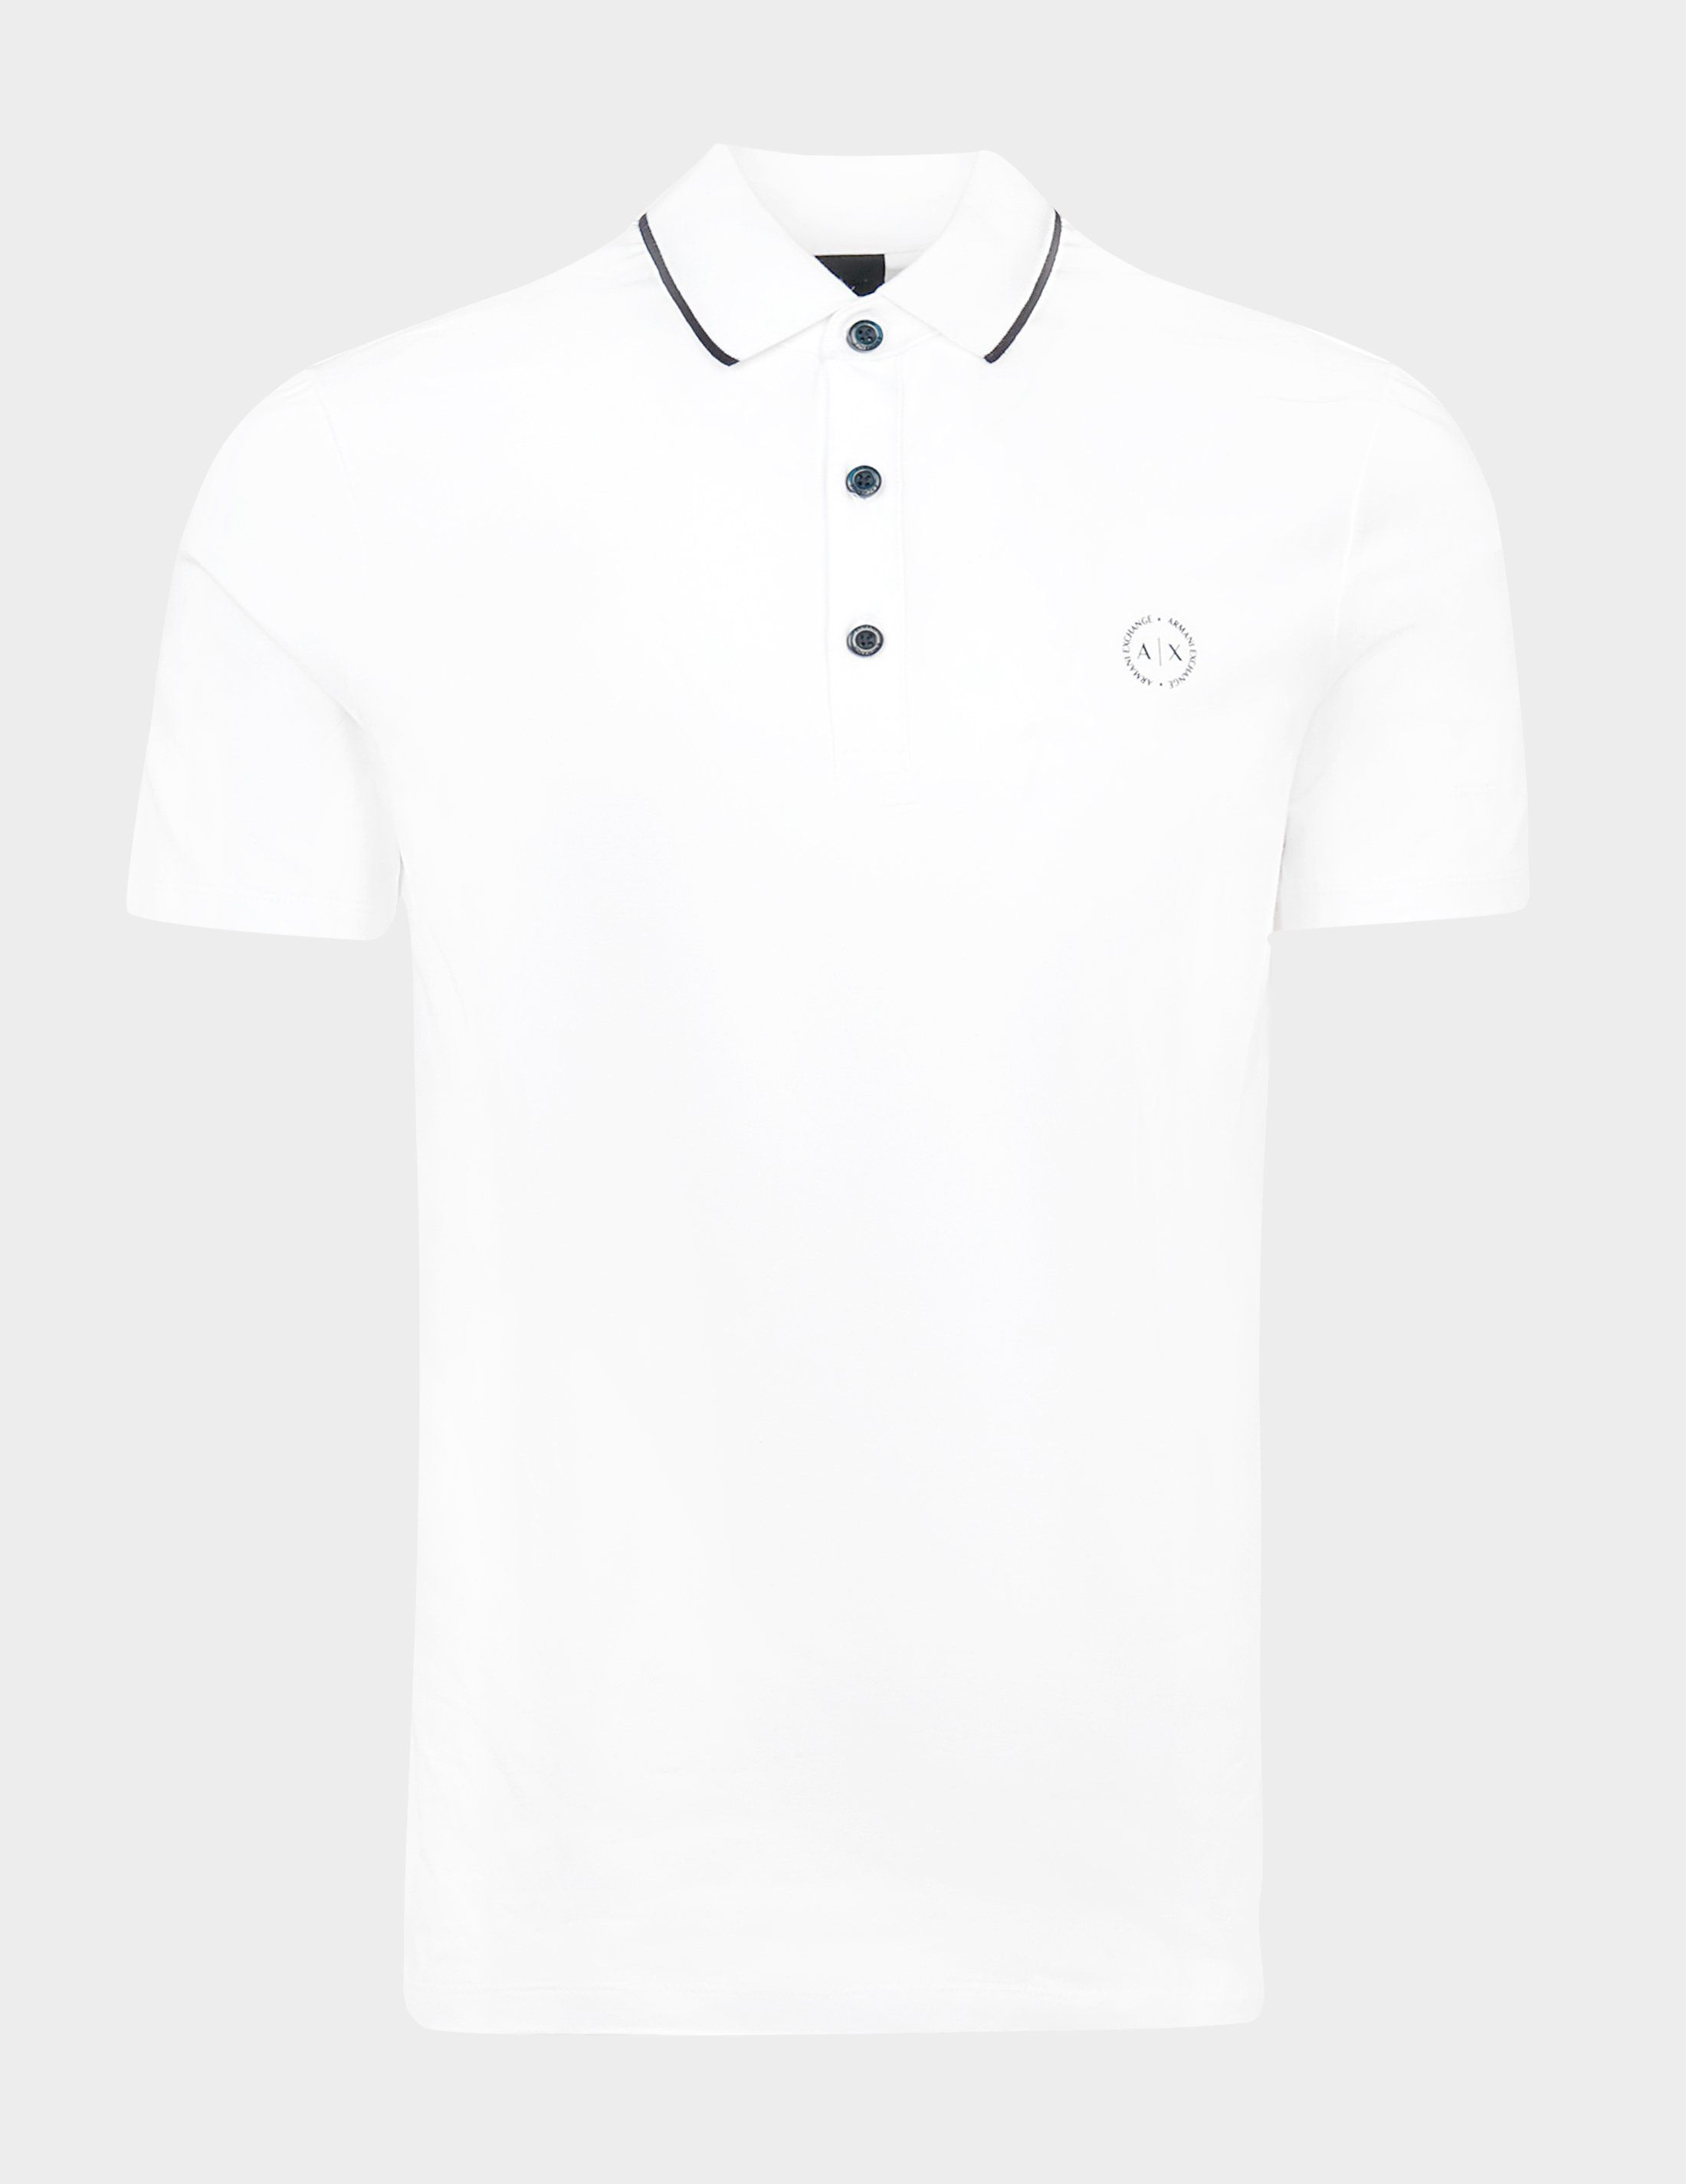 Armani Exchange Tipped Short Sleeve Polo Shirt - Online Exclusive